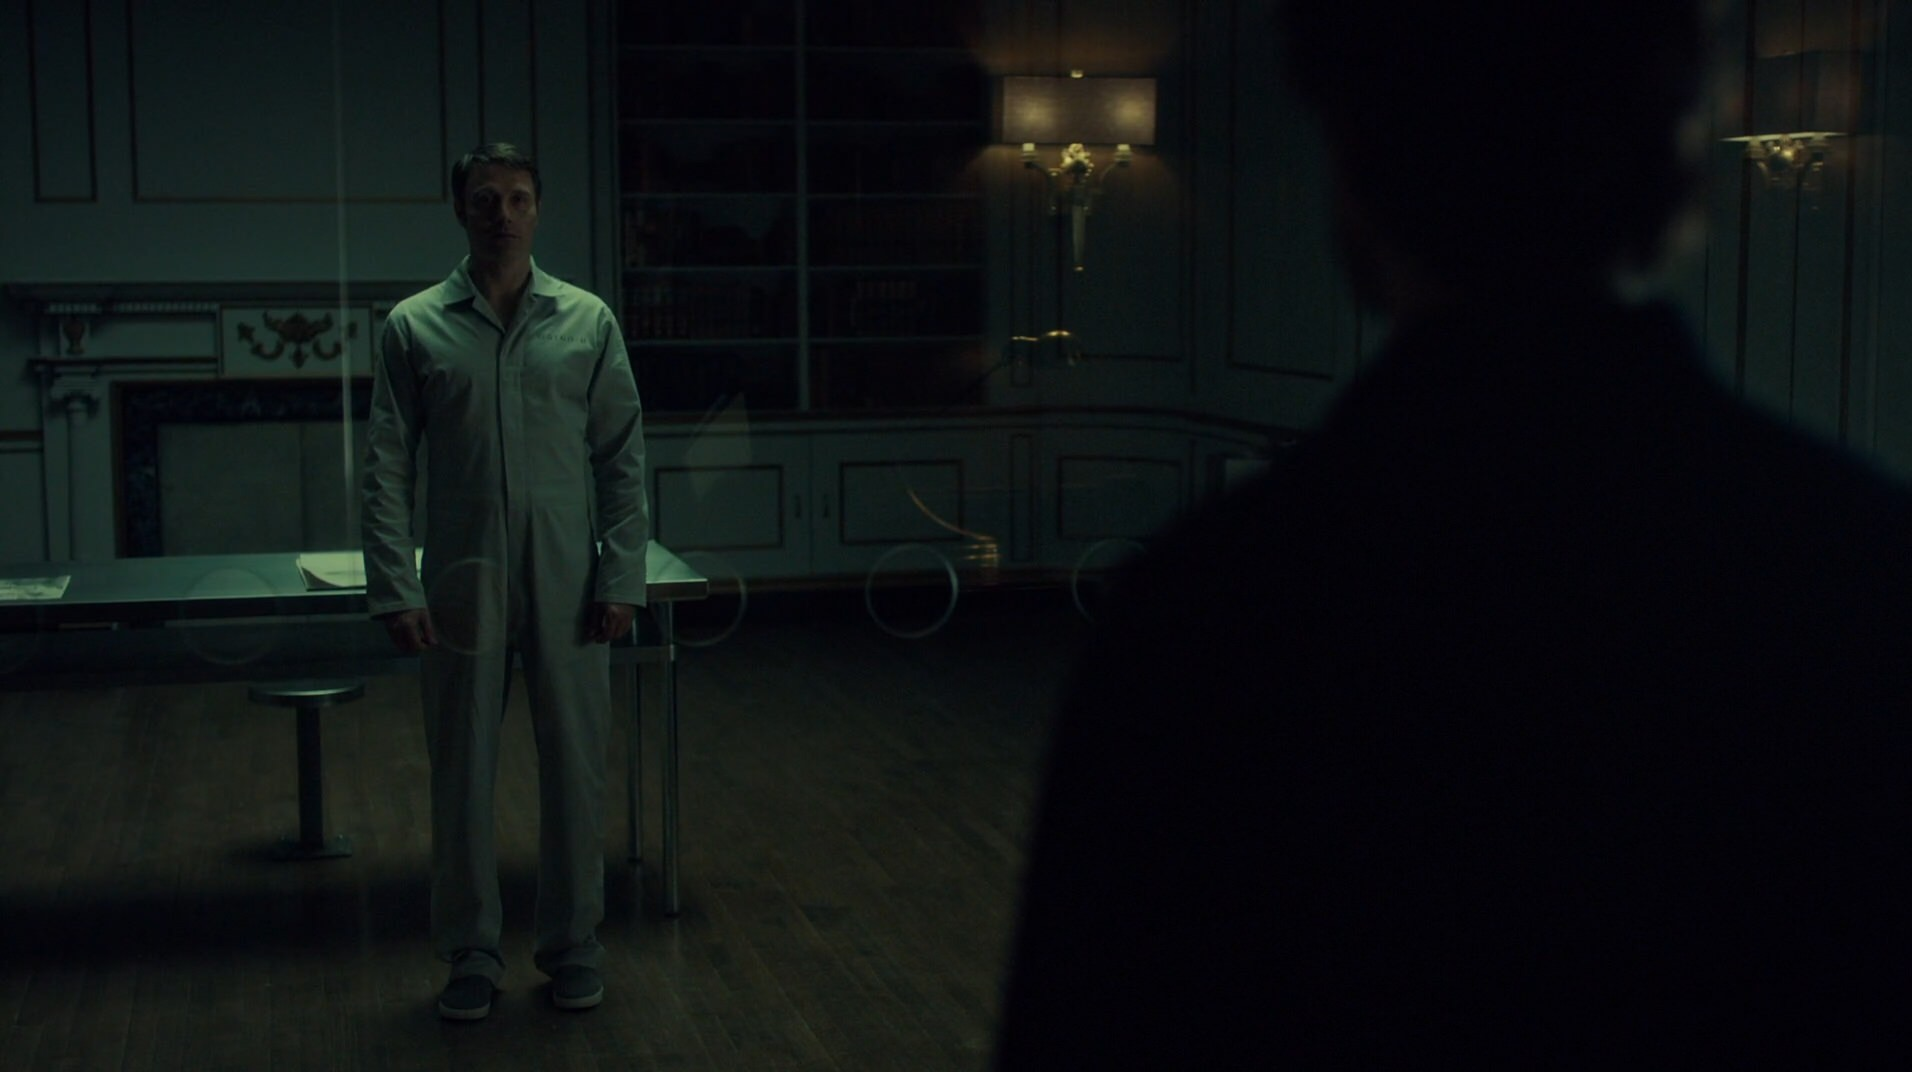 The Most Important Stories Told on Hannibal Were the Ones it Didn't Tell